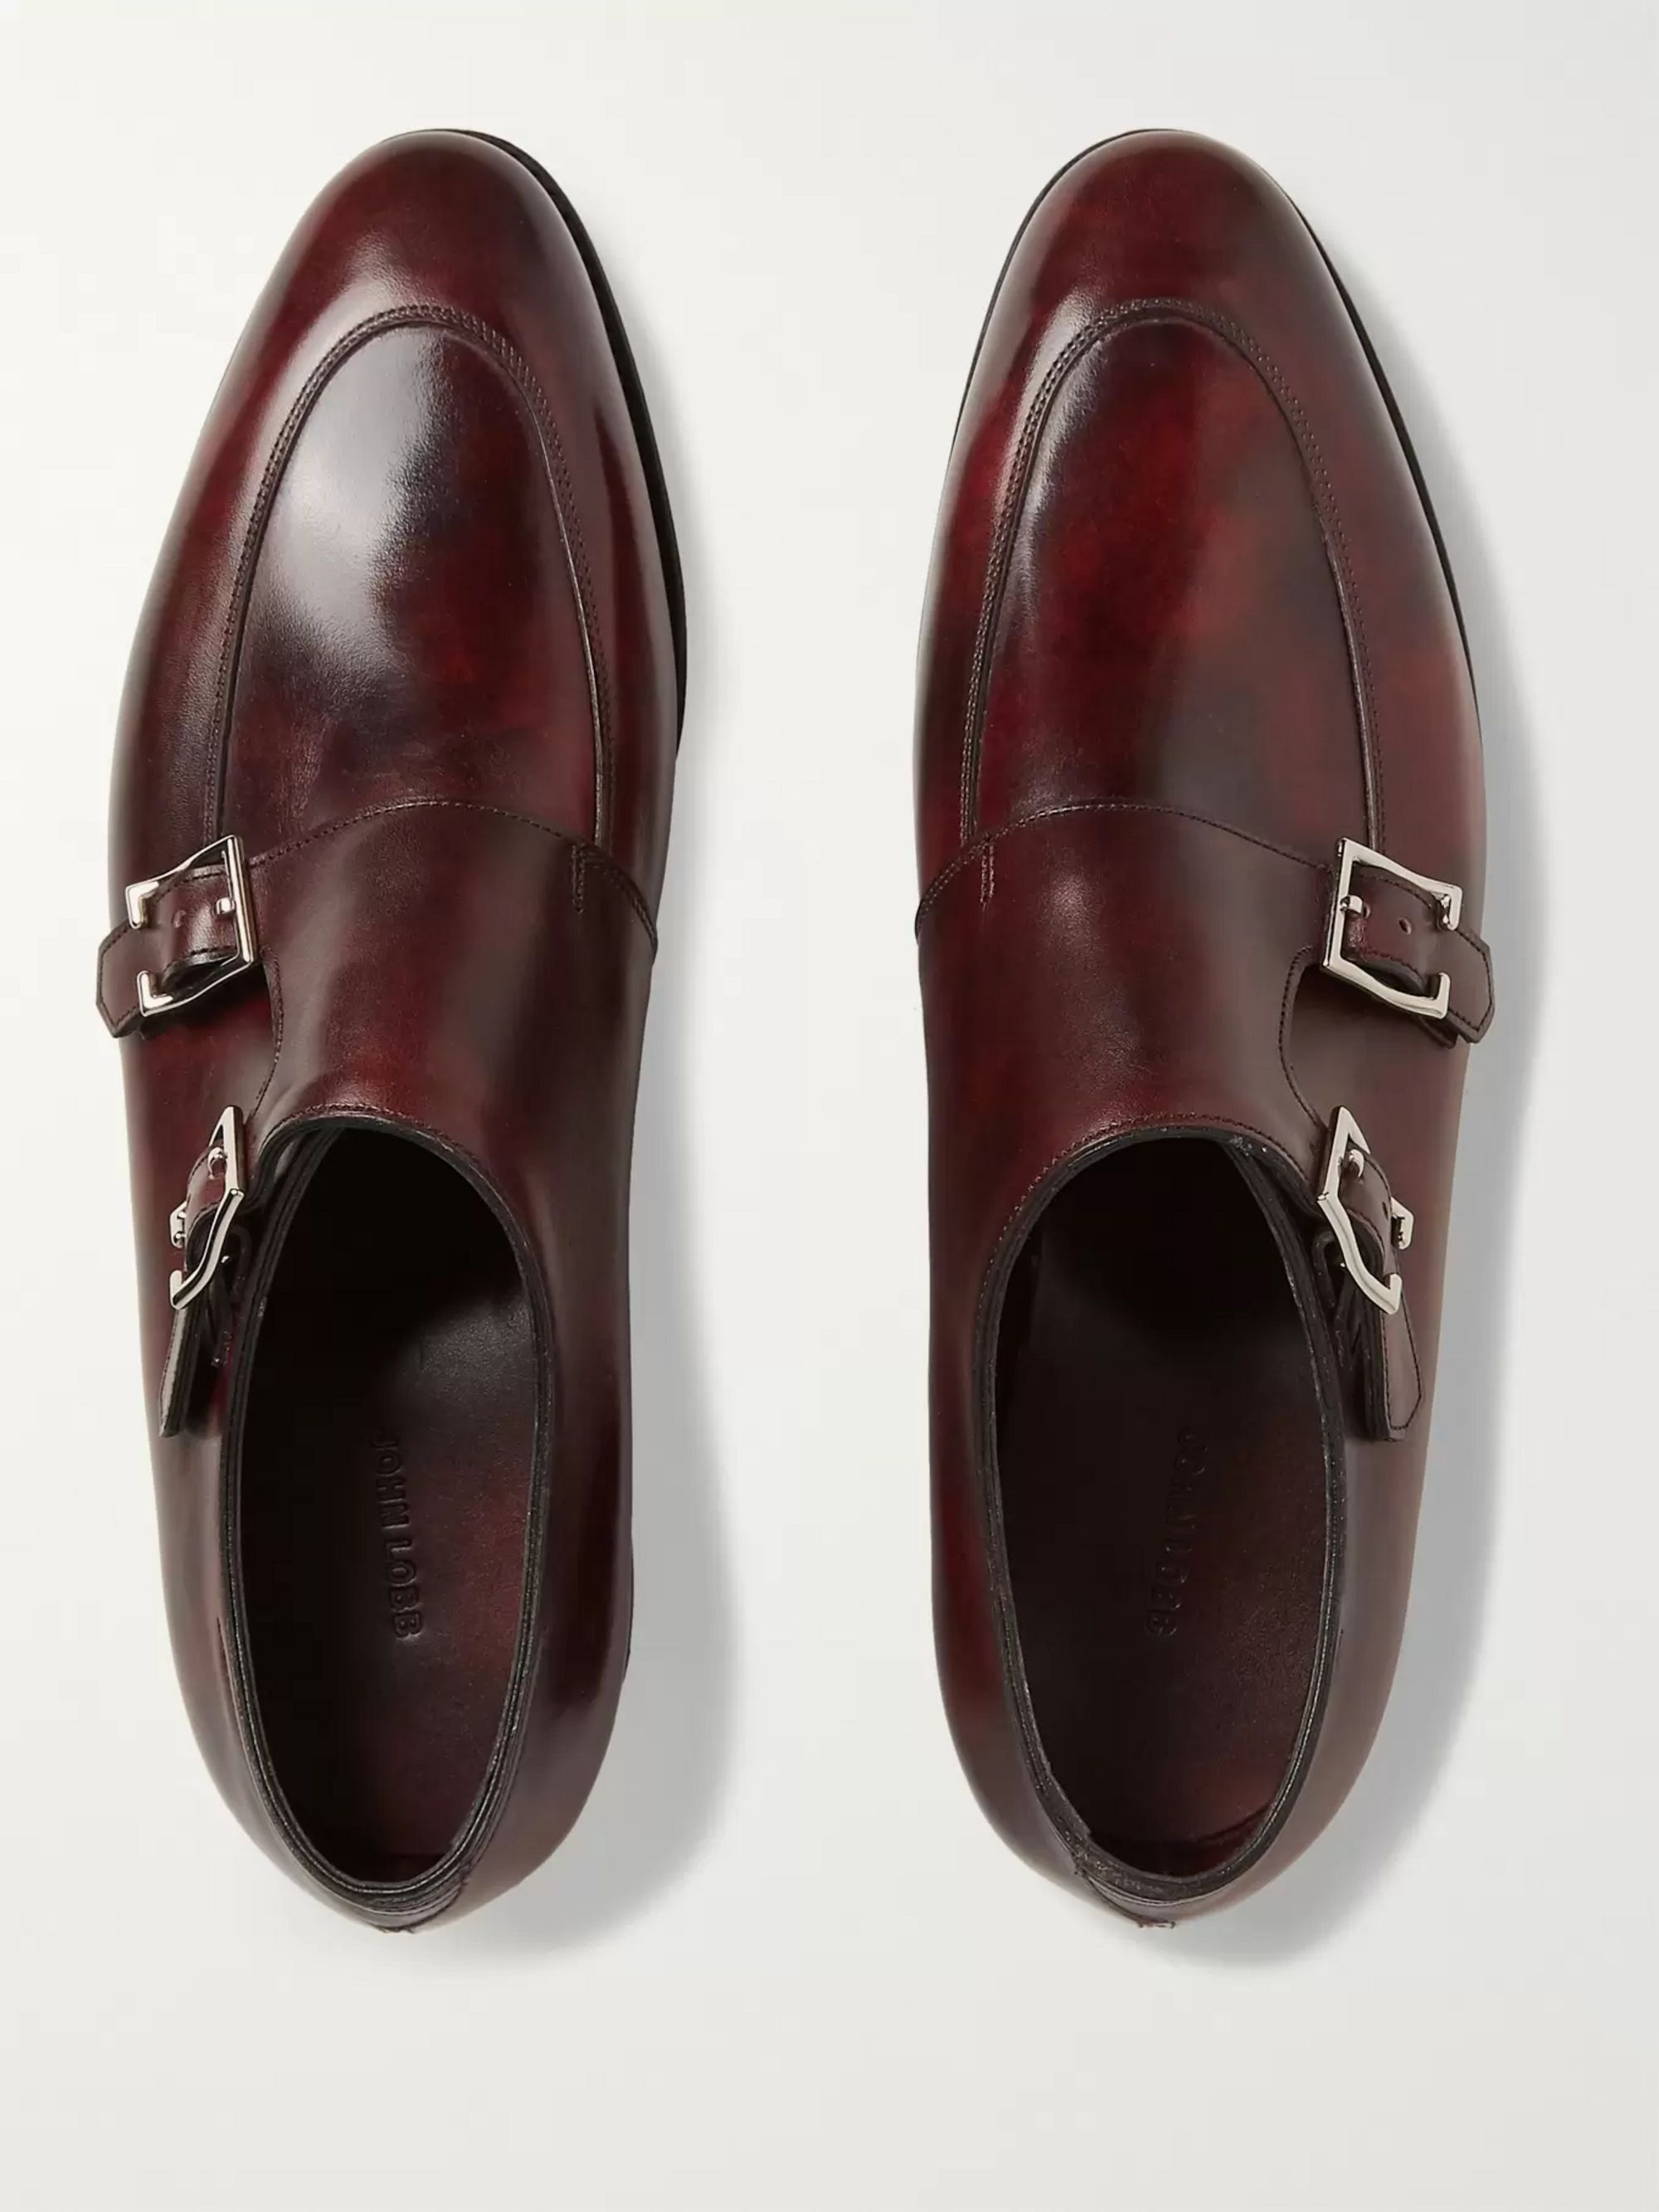 John Lobb Sennen Burnished-Leather Monk Strap Shoes